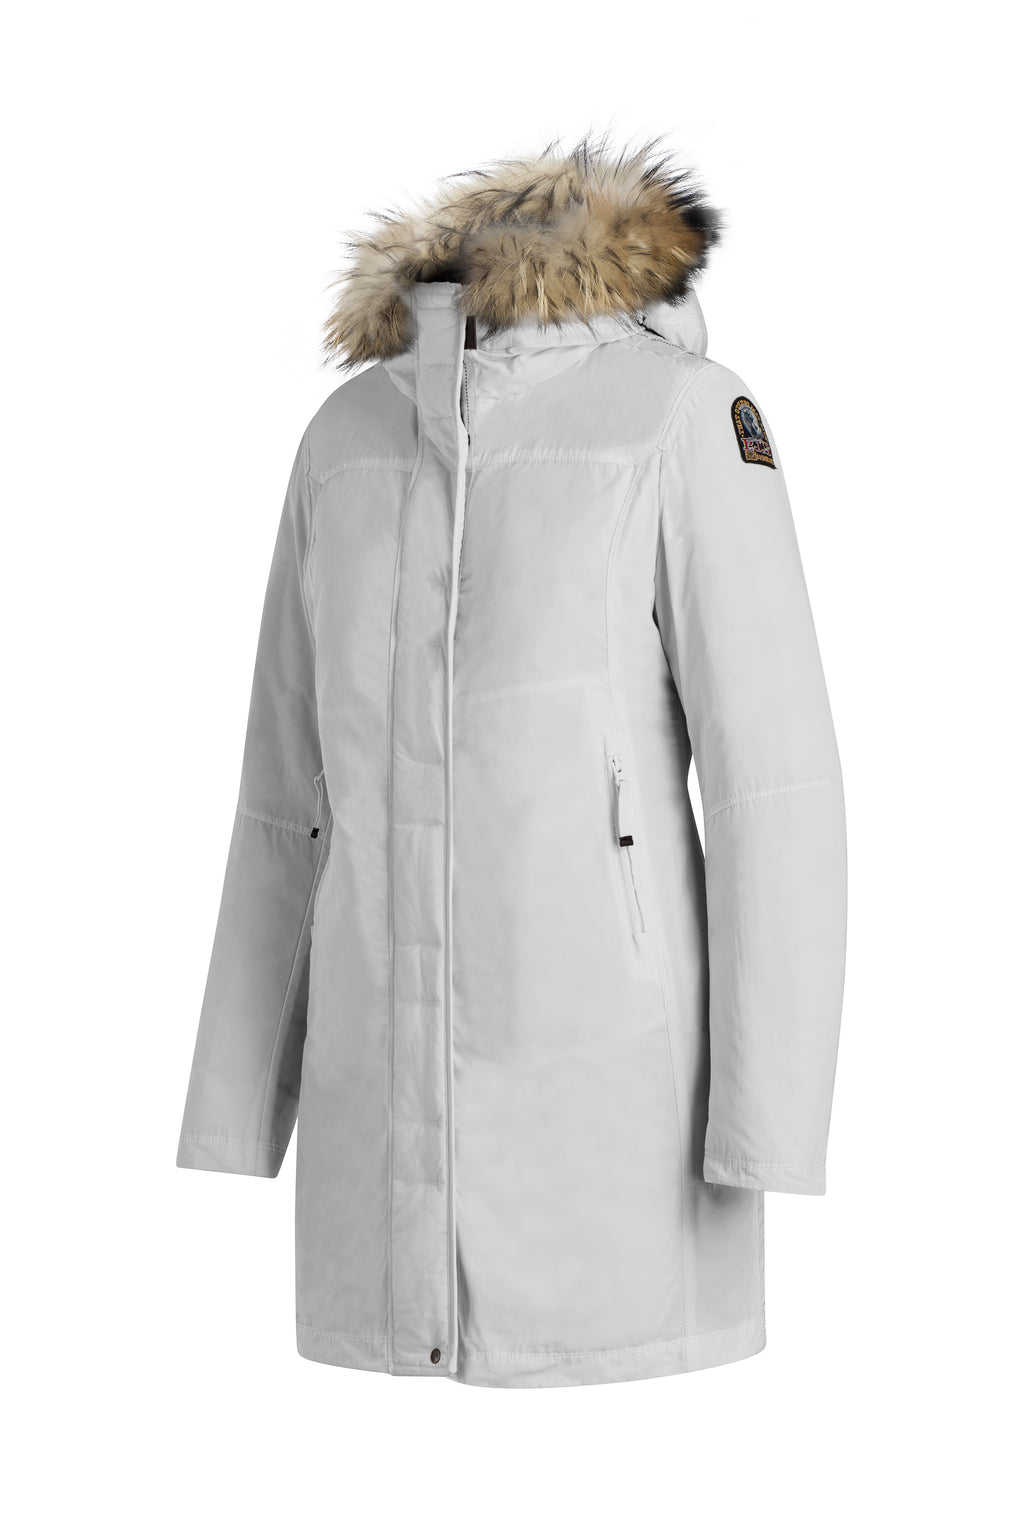 Parajumpers Selma Down Jacket in Off White